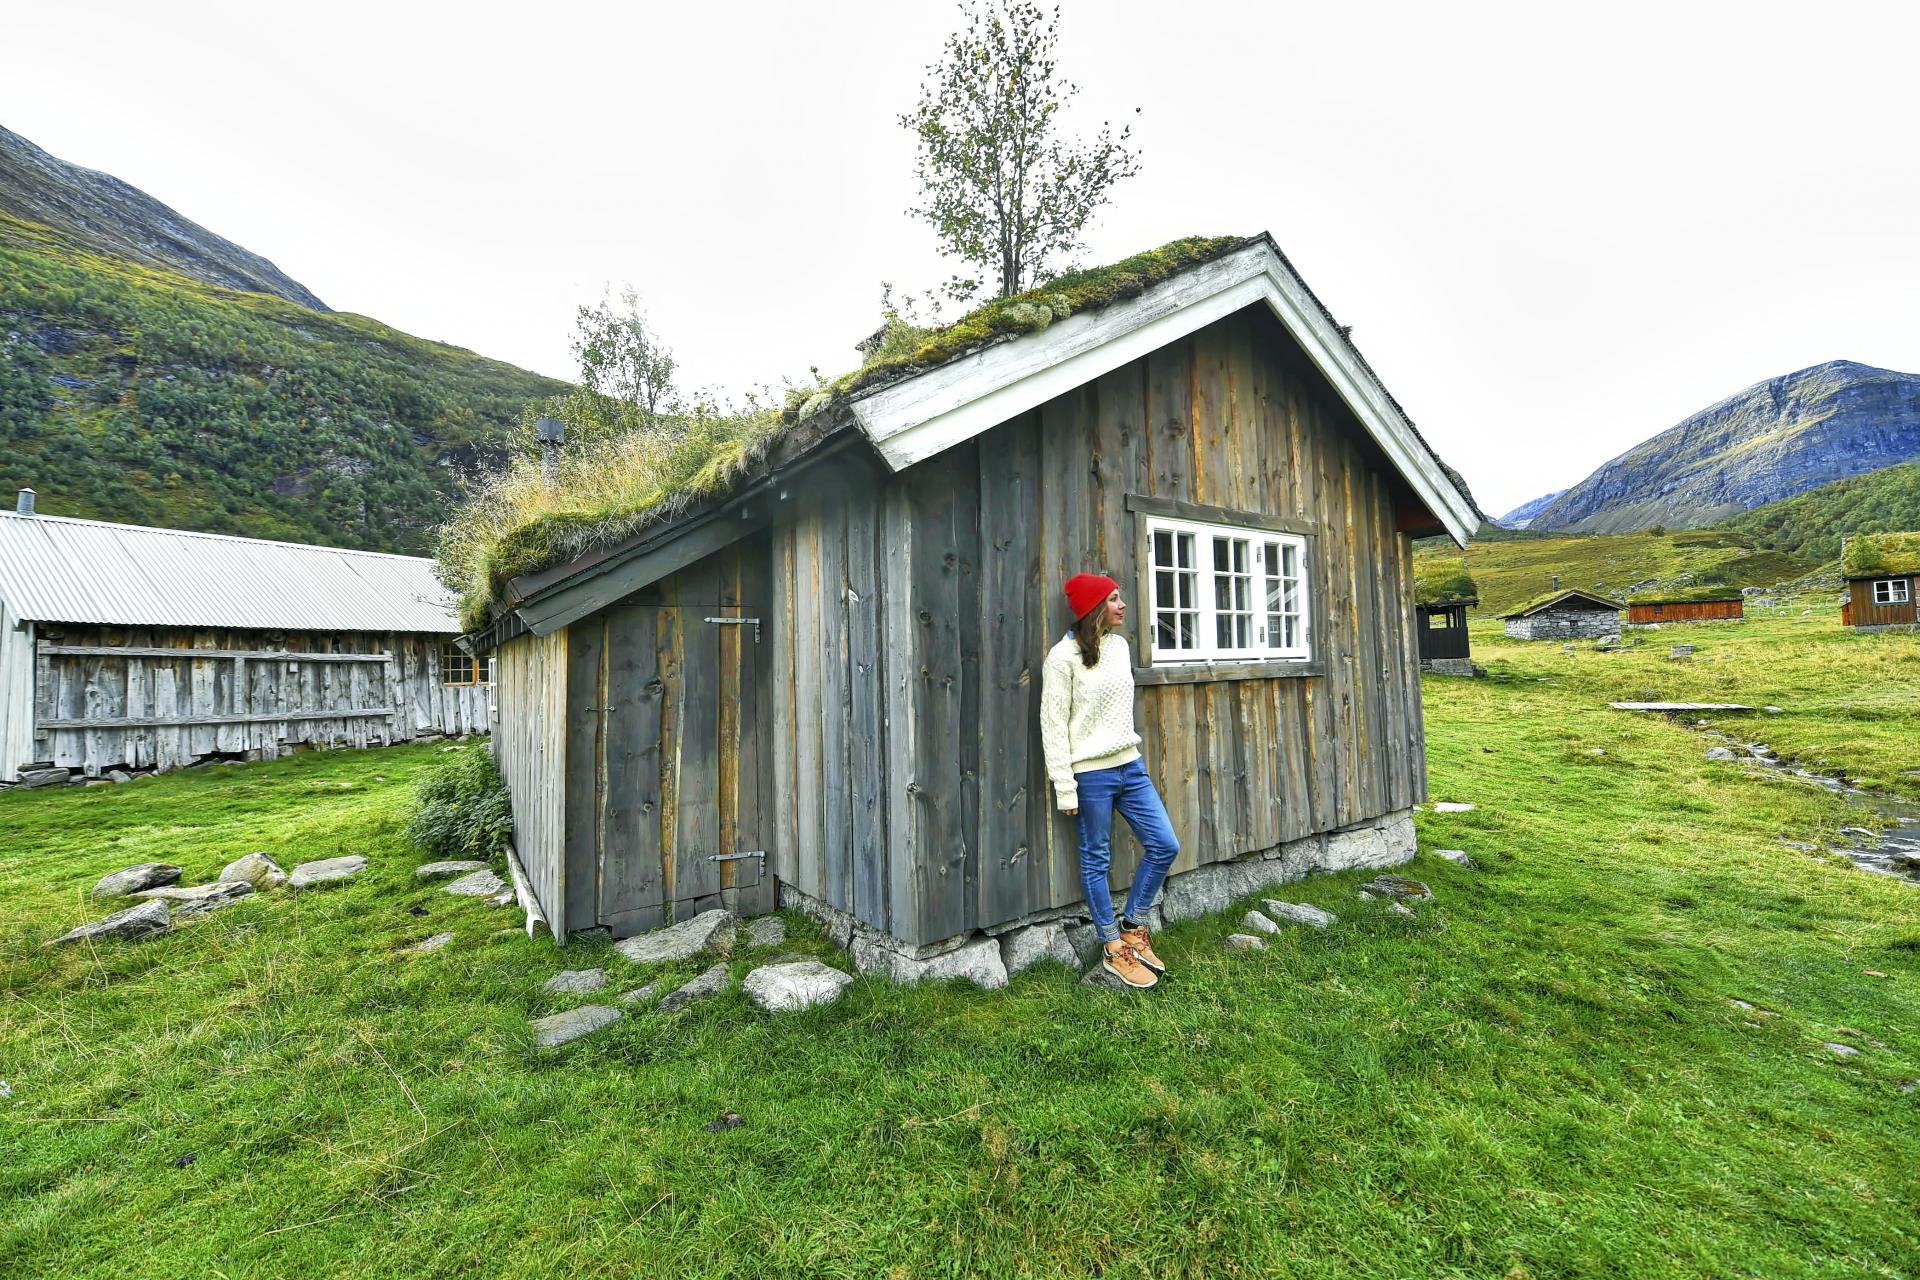 Norwegian fjords adventures The Girl Outdoors